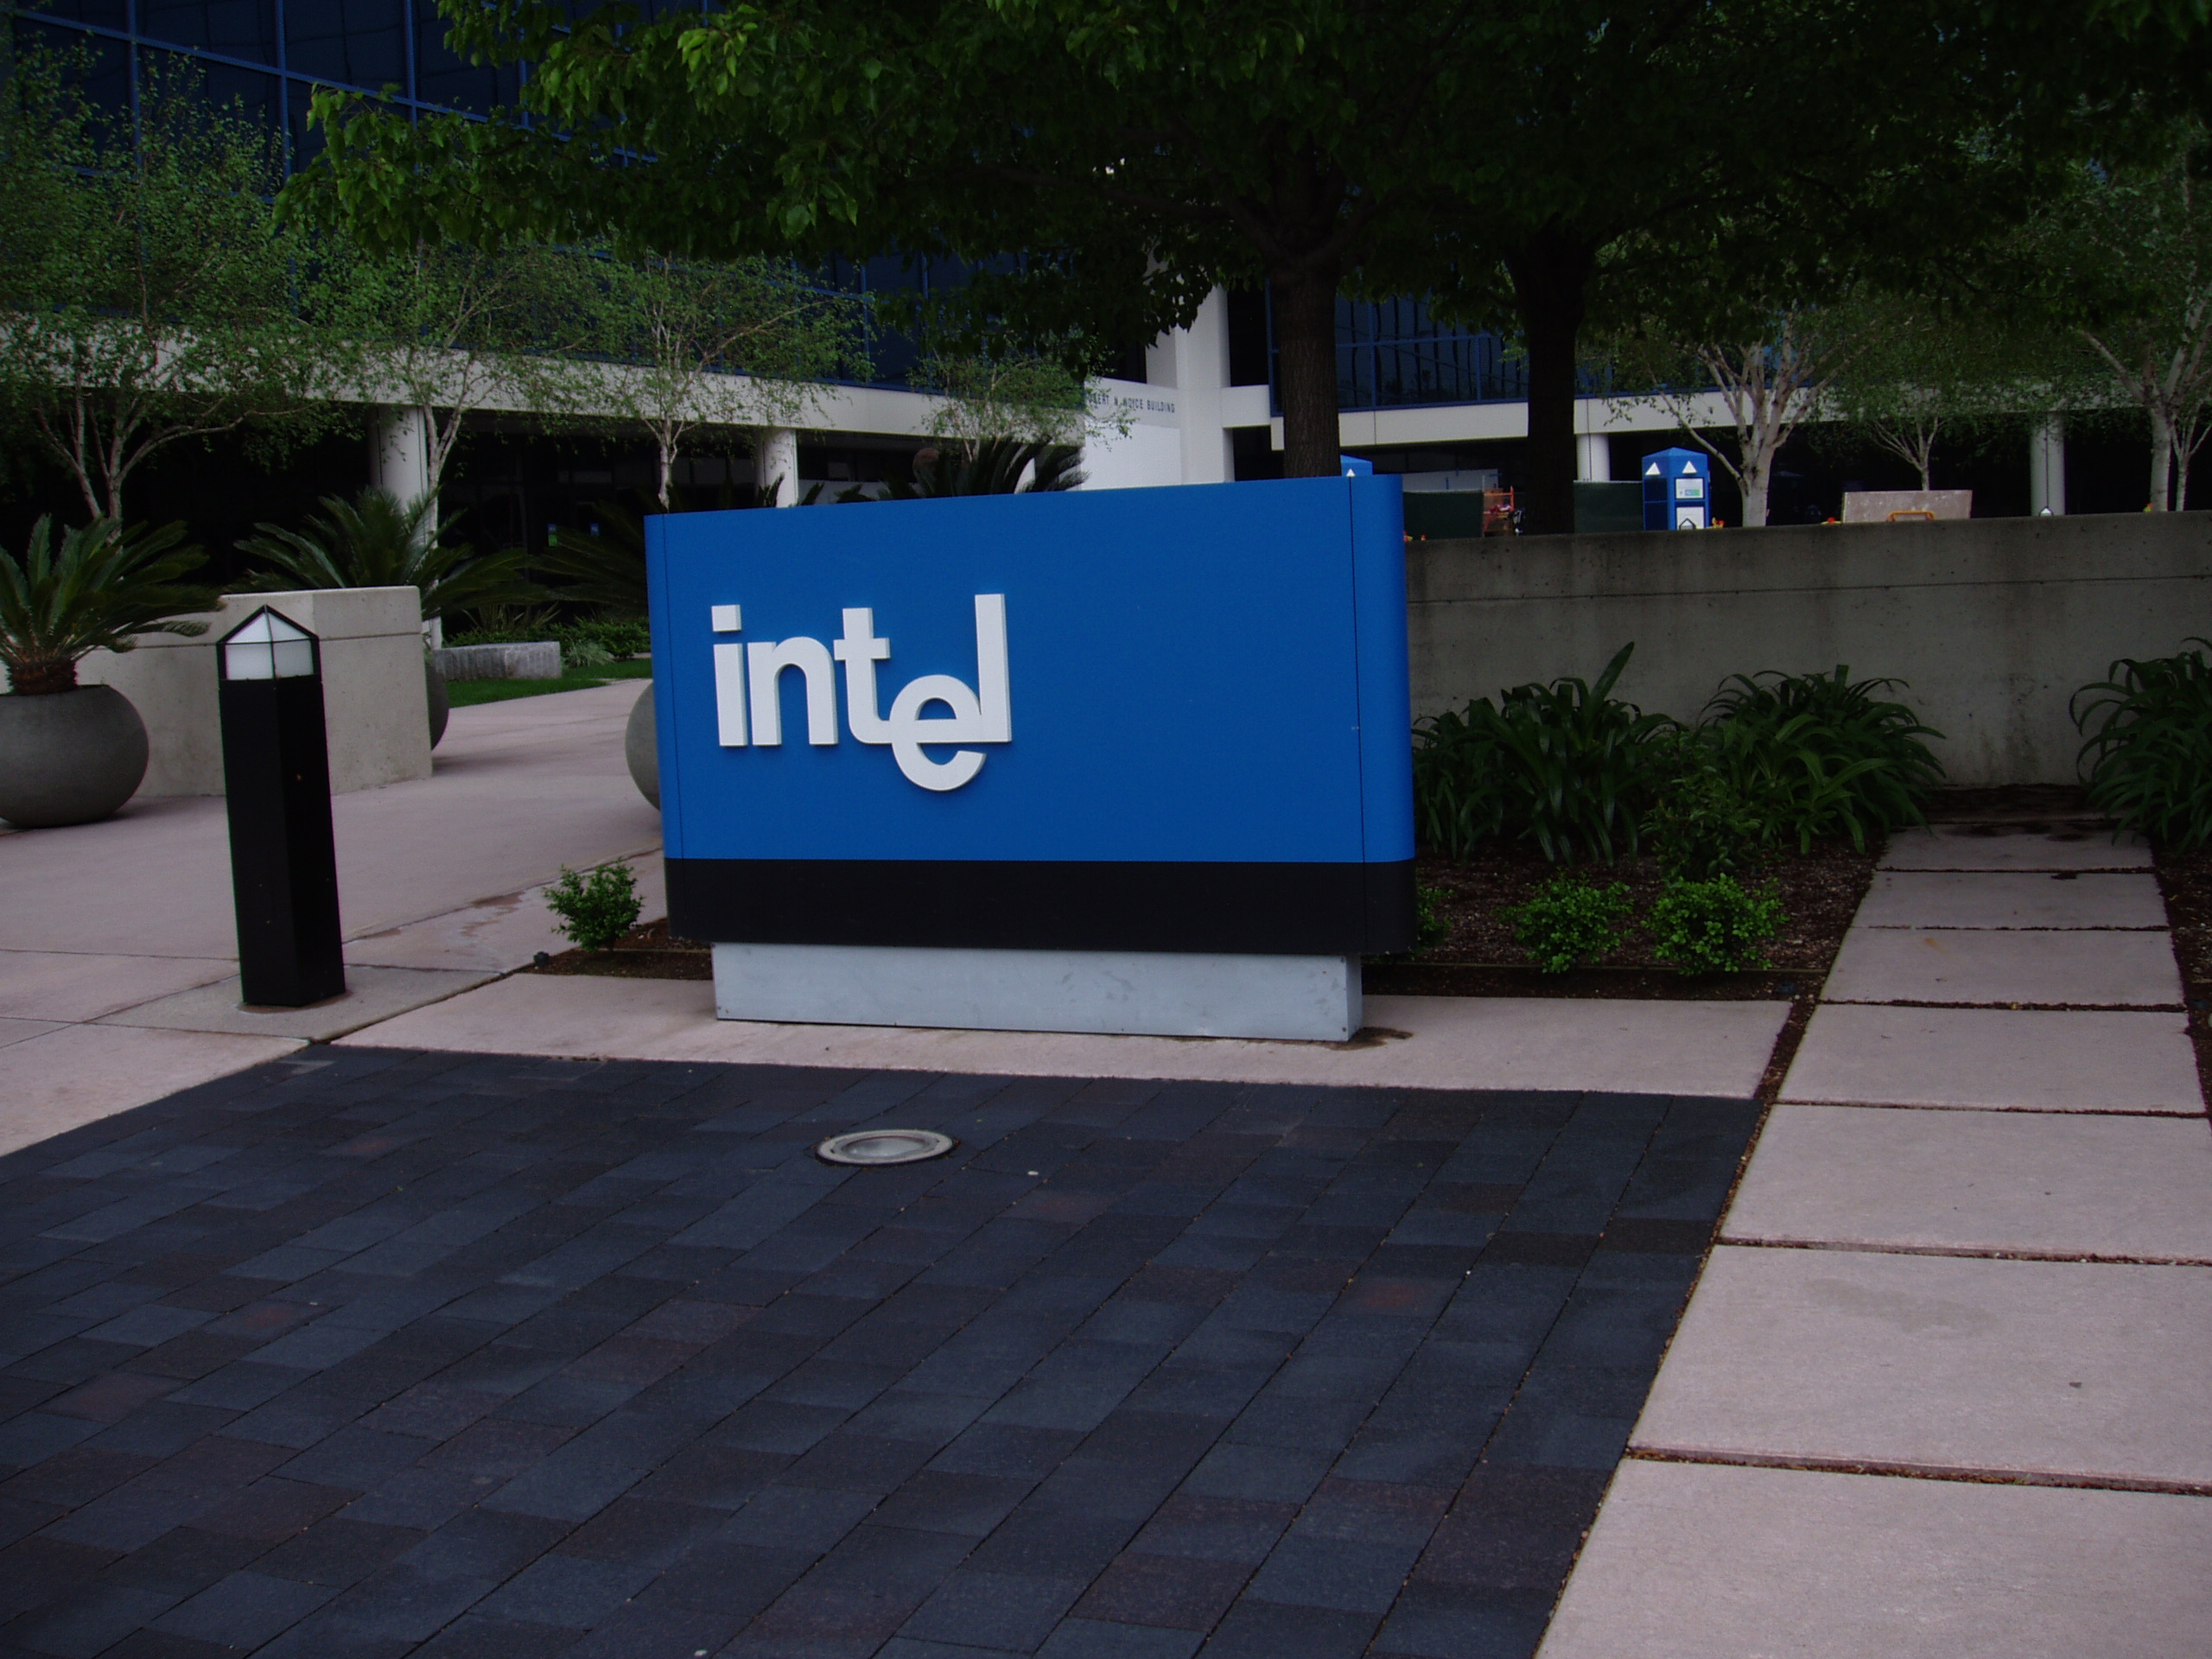 Intel ceases the production of Kaby Lake desktop processors